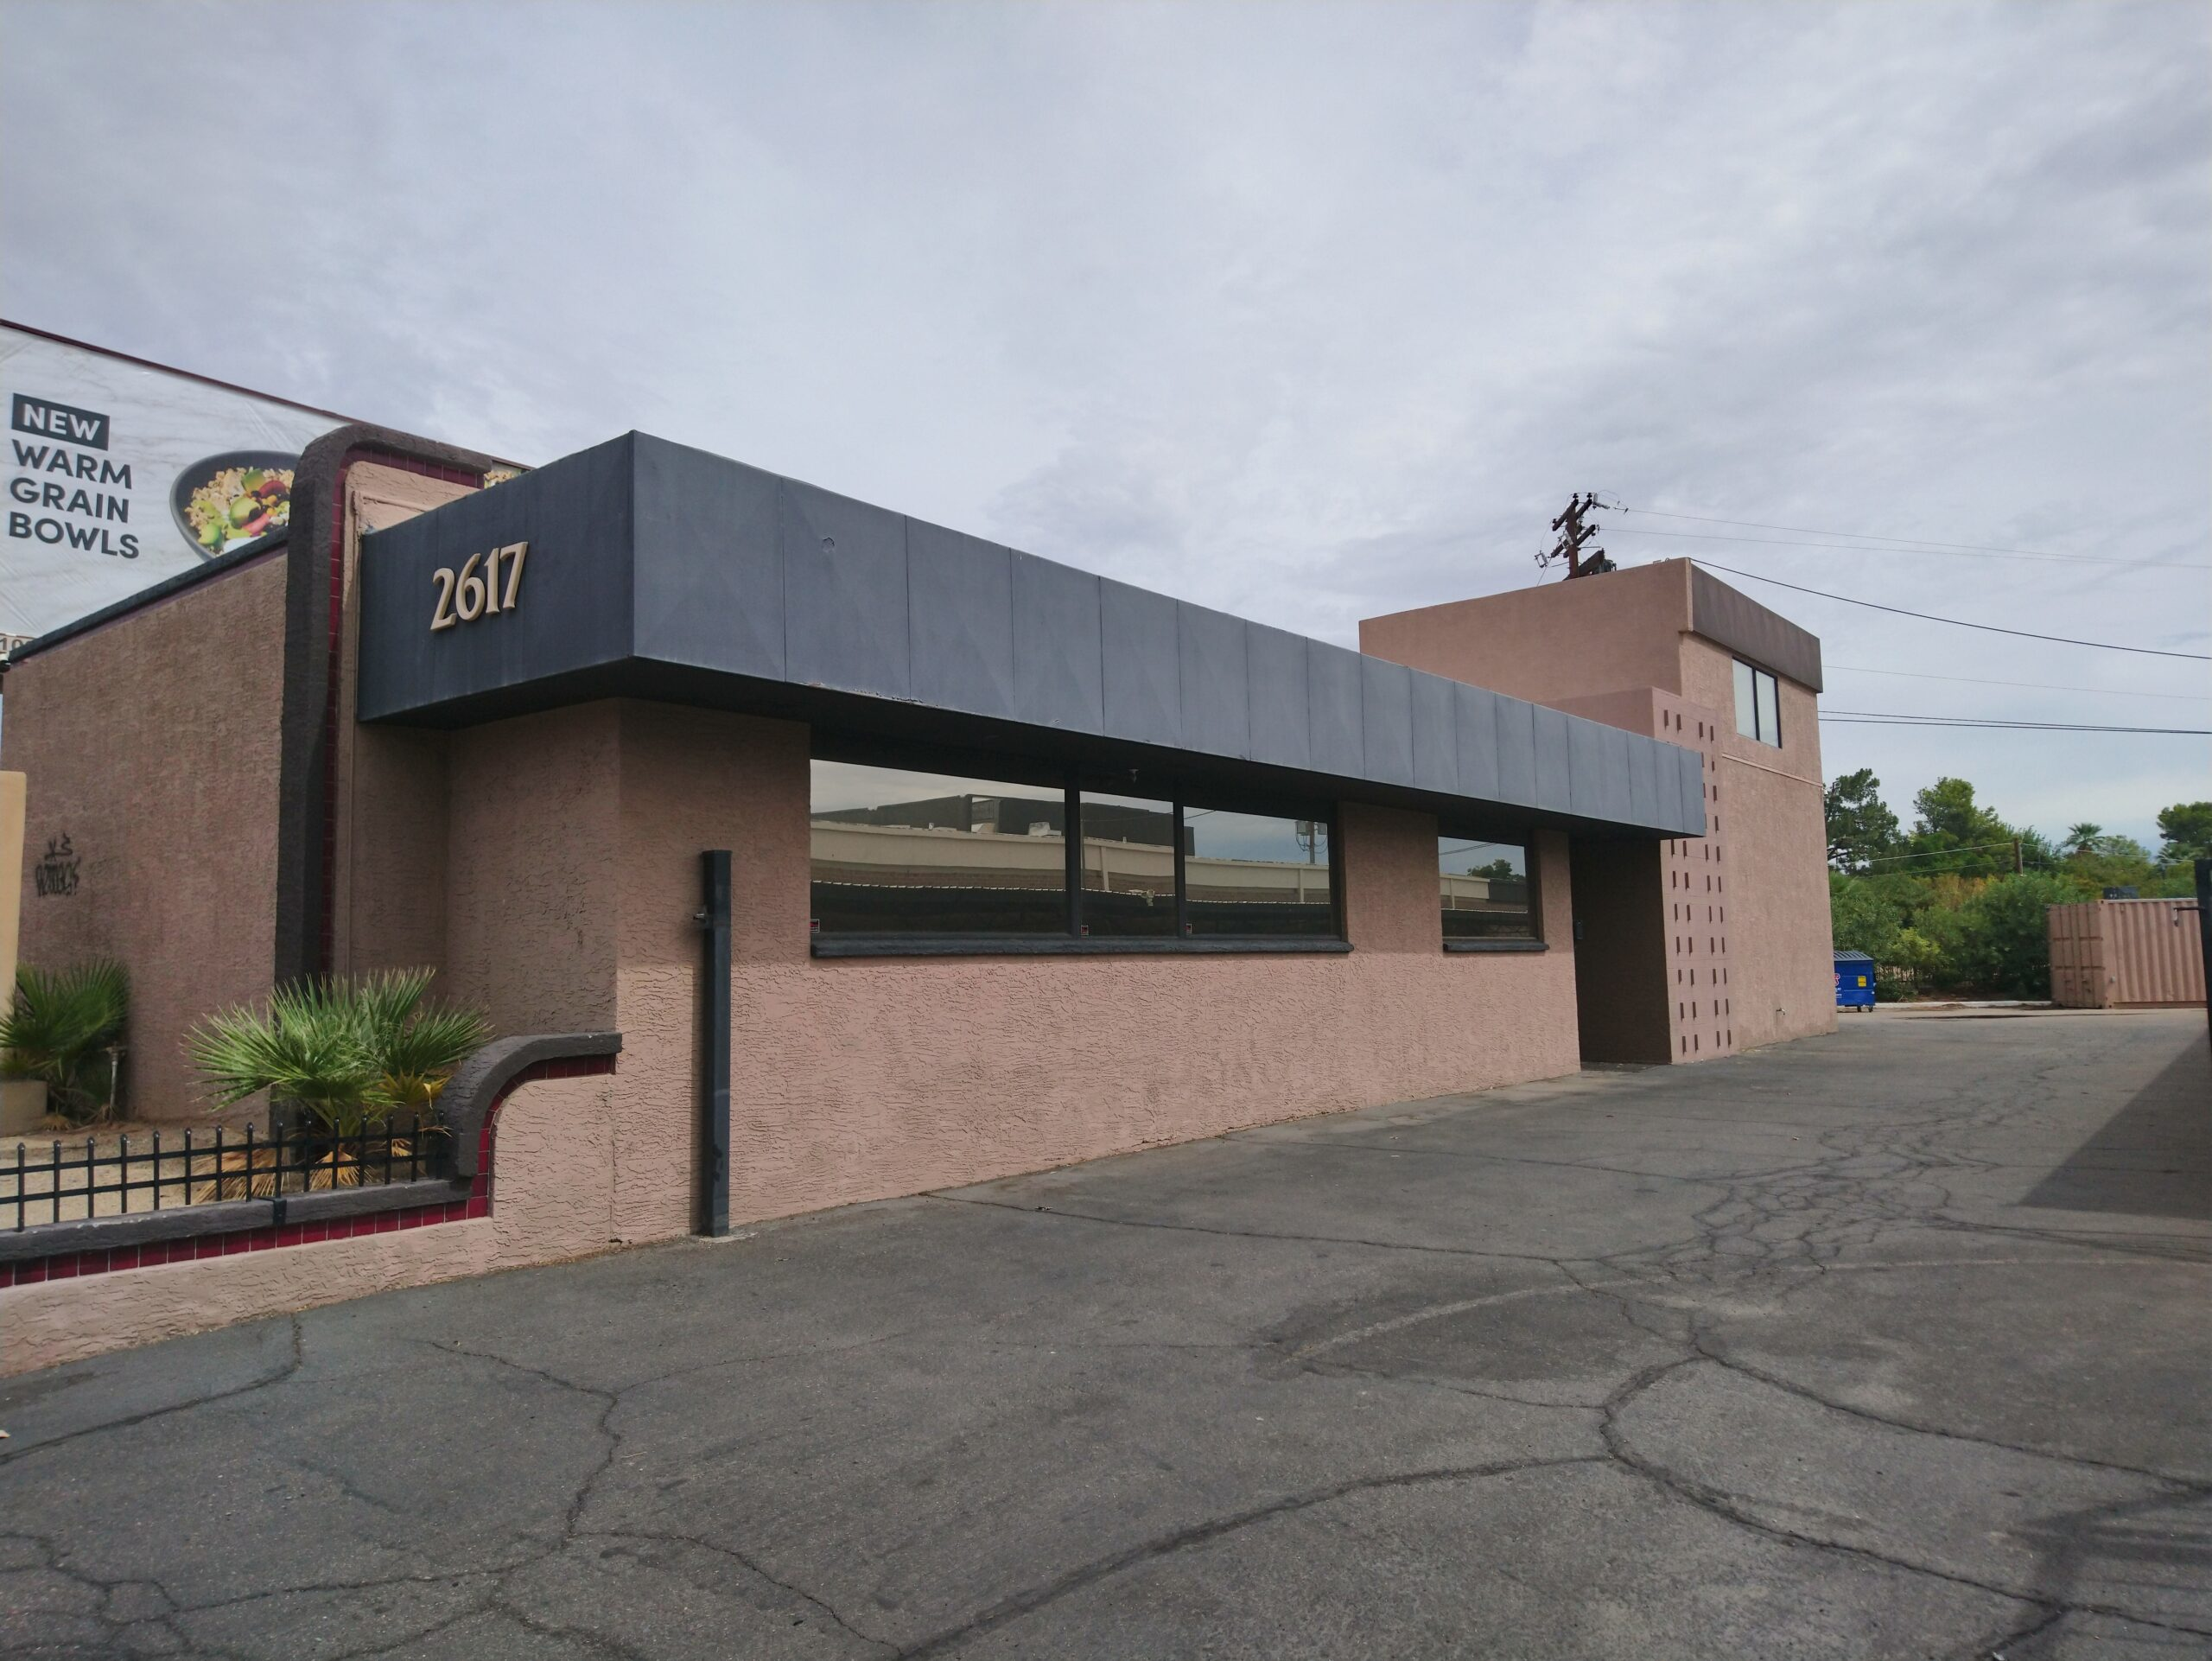 <p>This small 4,000 SF project for a creative developer couple is a reboot of a previous law office into a fresh light-filled pottery studio available for public classes along with an adjoined coffee shop and private artist studios for rent. The City of Phoenix permits have been granted and construction […]</p>